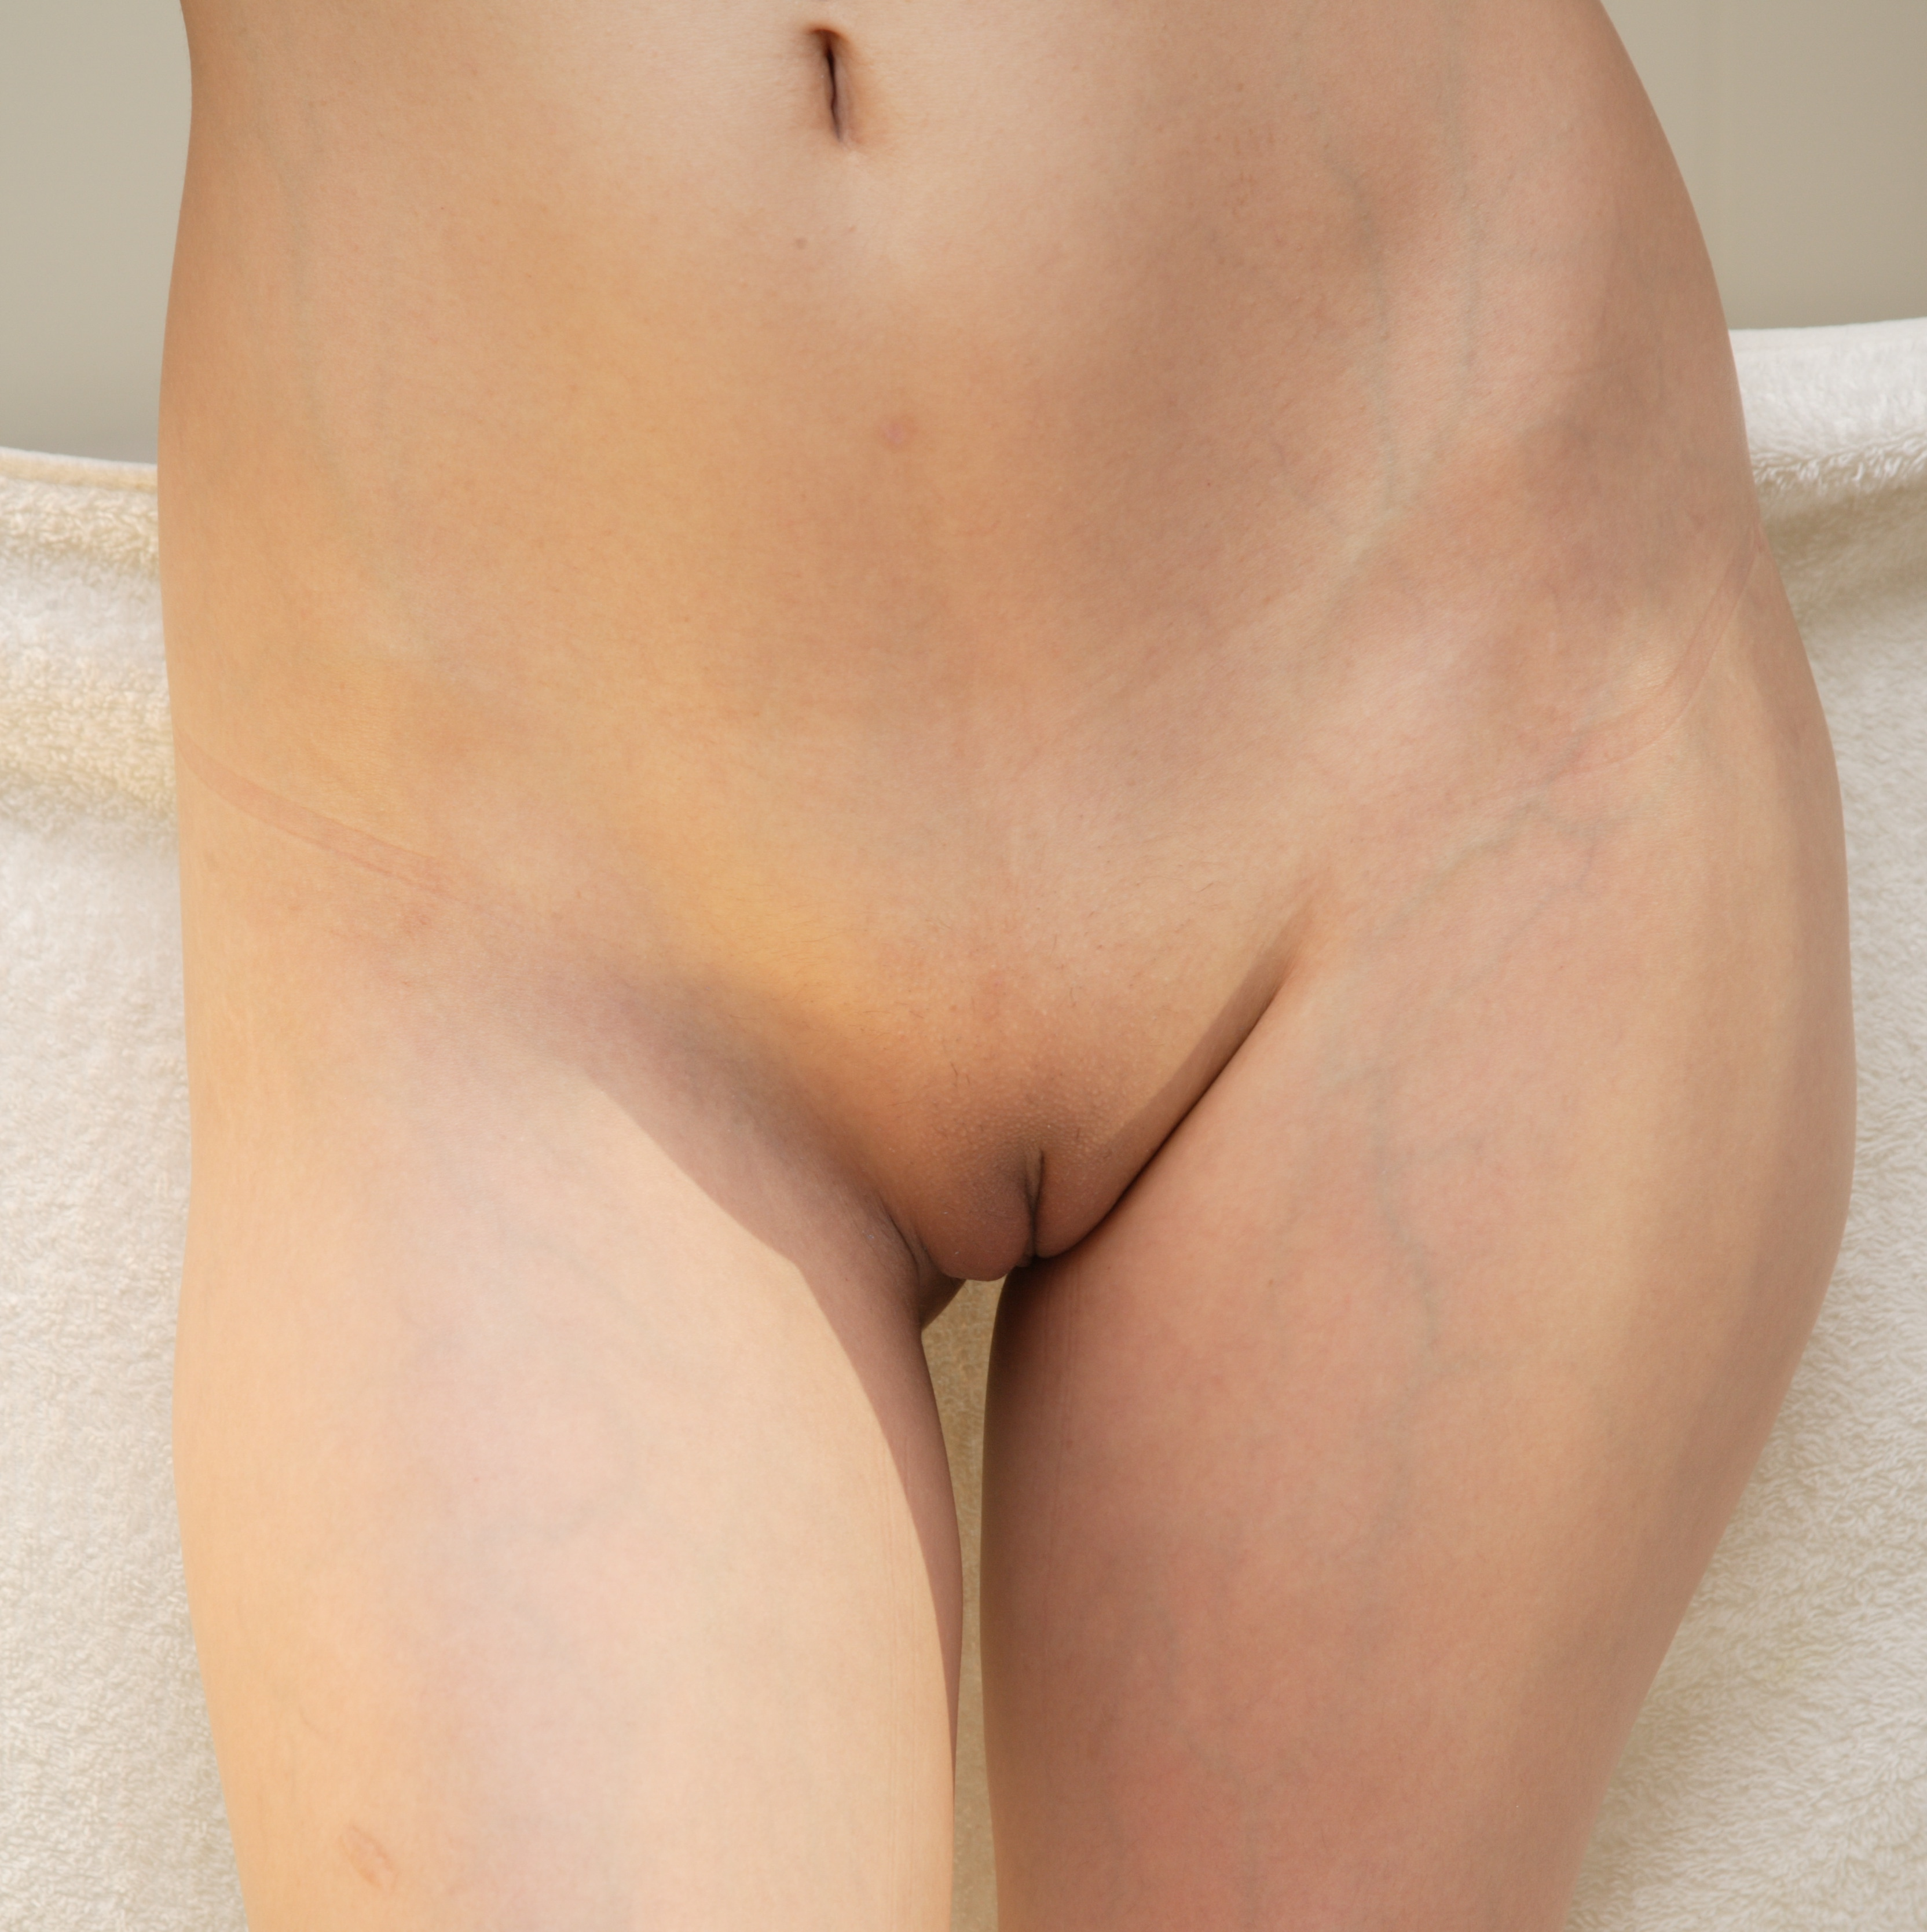 Frontal Nude Women